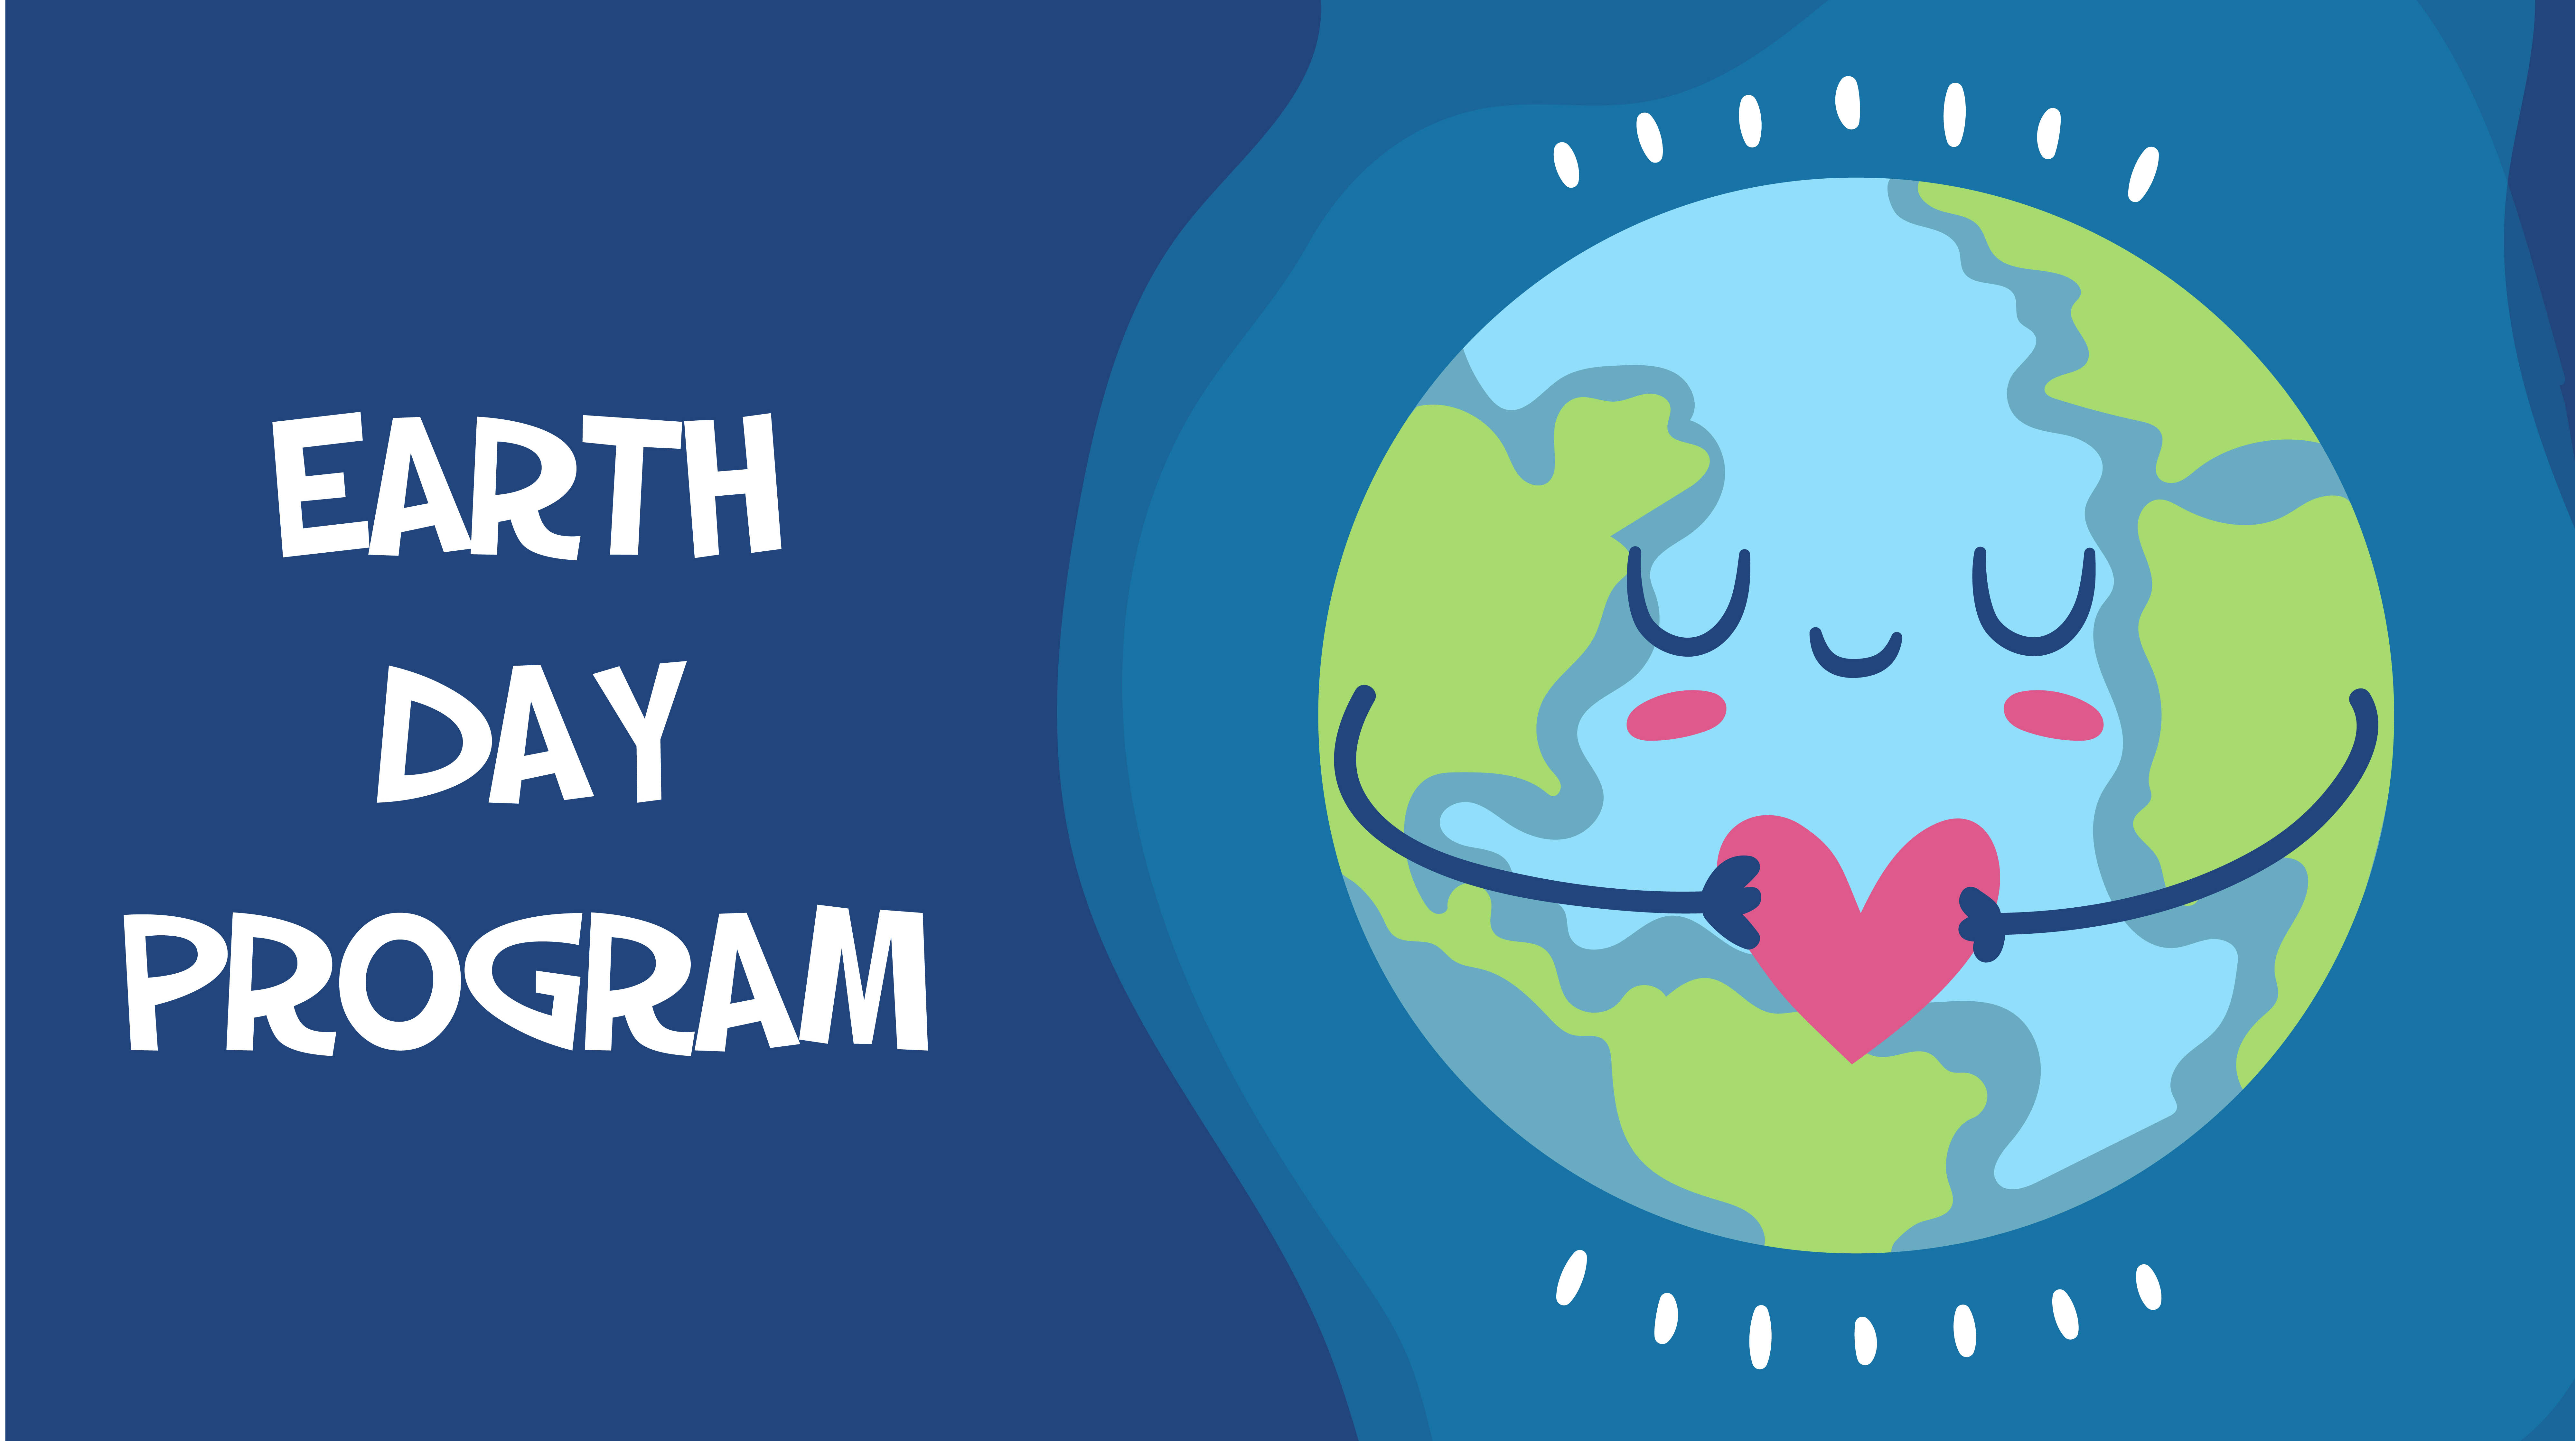 Earth Day Program